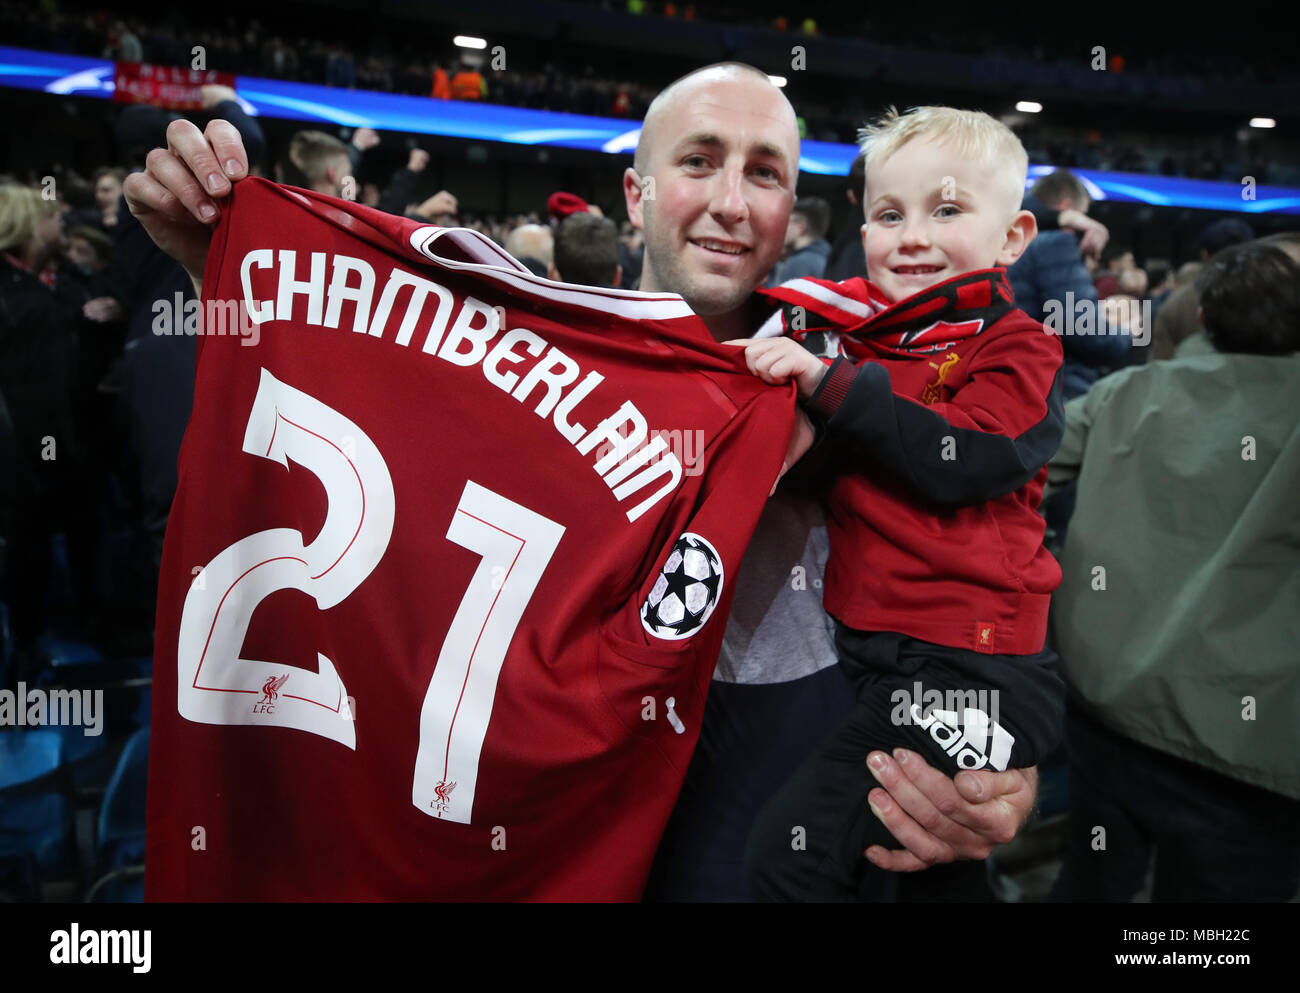 new style 2fcb7 e5bf3 Fans with Liverpool's Alex Oxlade-Chamberlain's shirt after ...